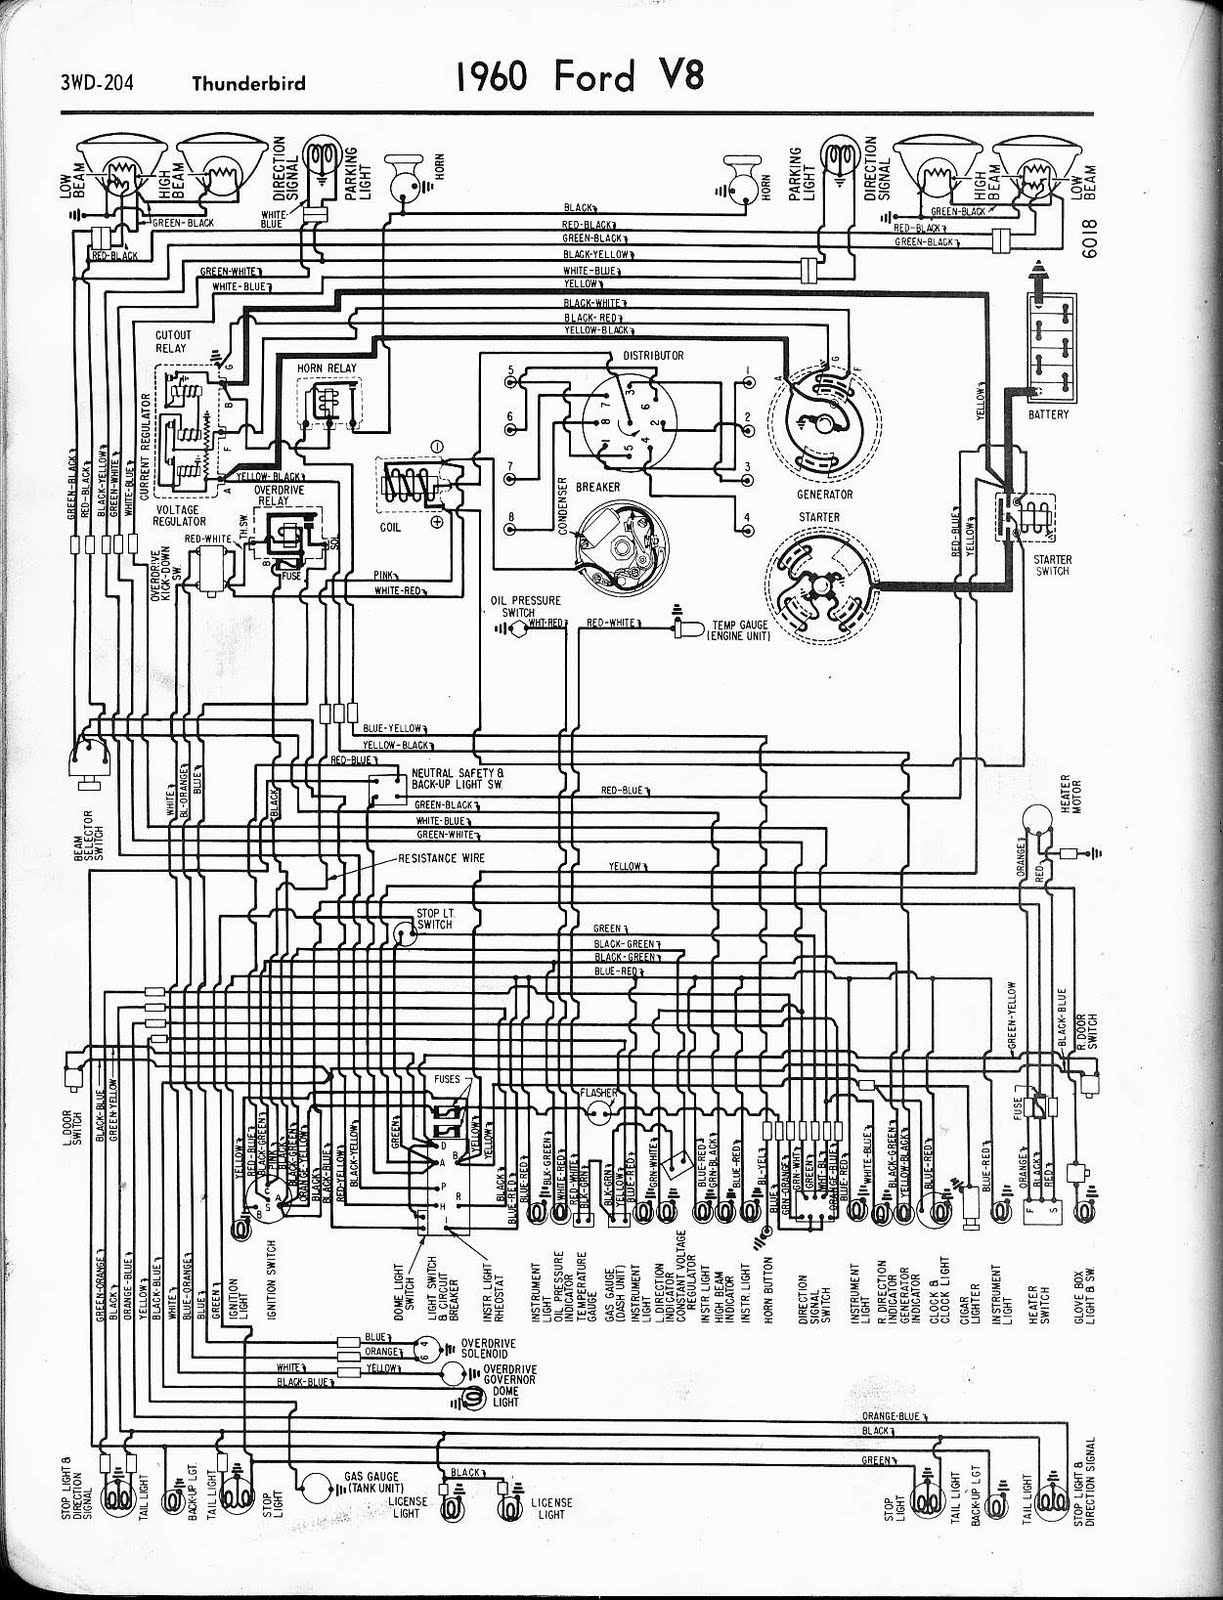 auto wiring diagram 1960 ford v8 thunderbird wiring diagram 1960 ford v8 thunderbird wiring diagram